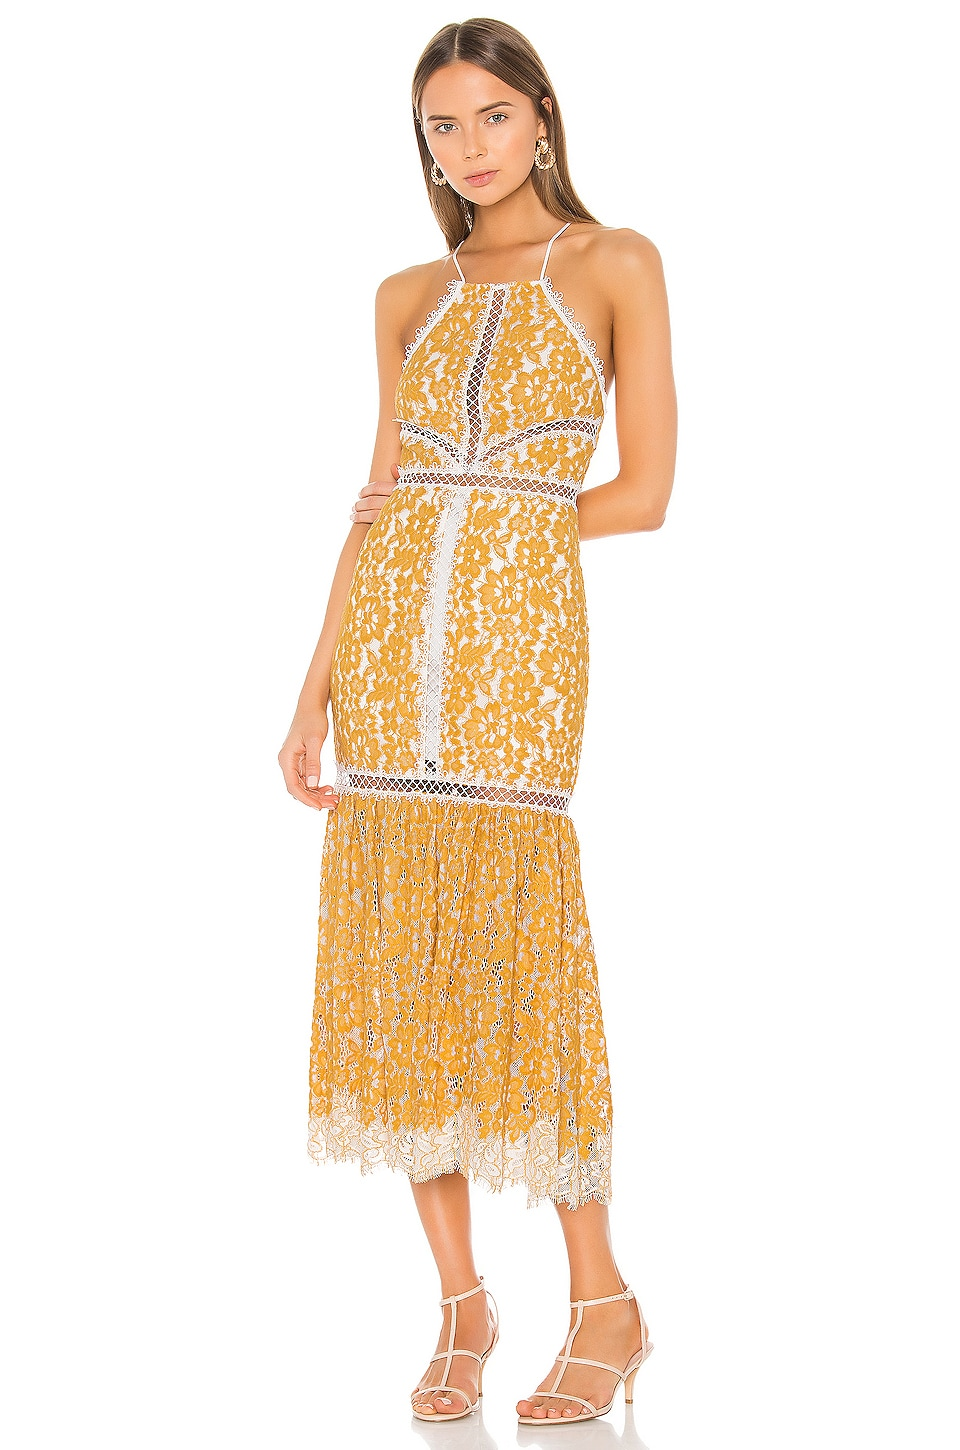 X by NBD Felicity Embroidered Dress in Yellow & Ivory